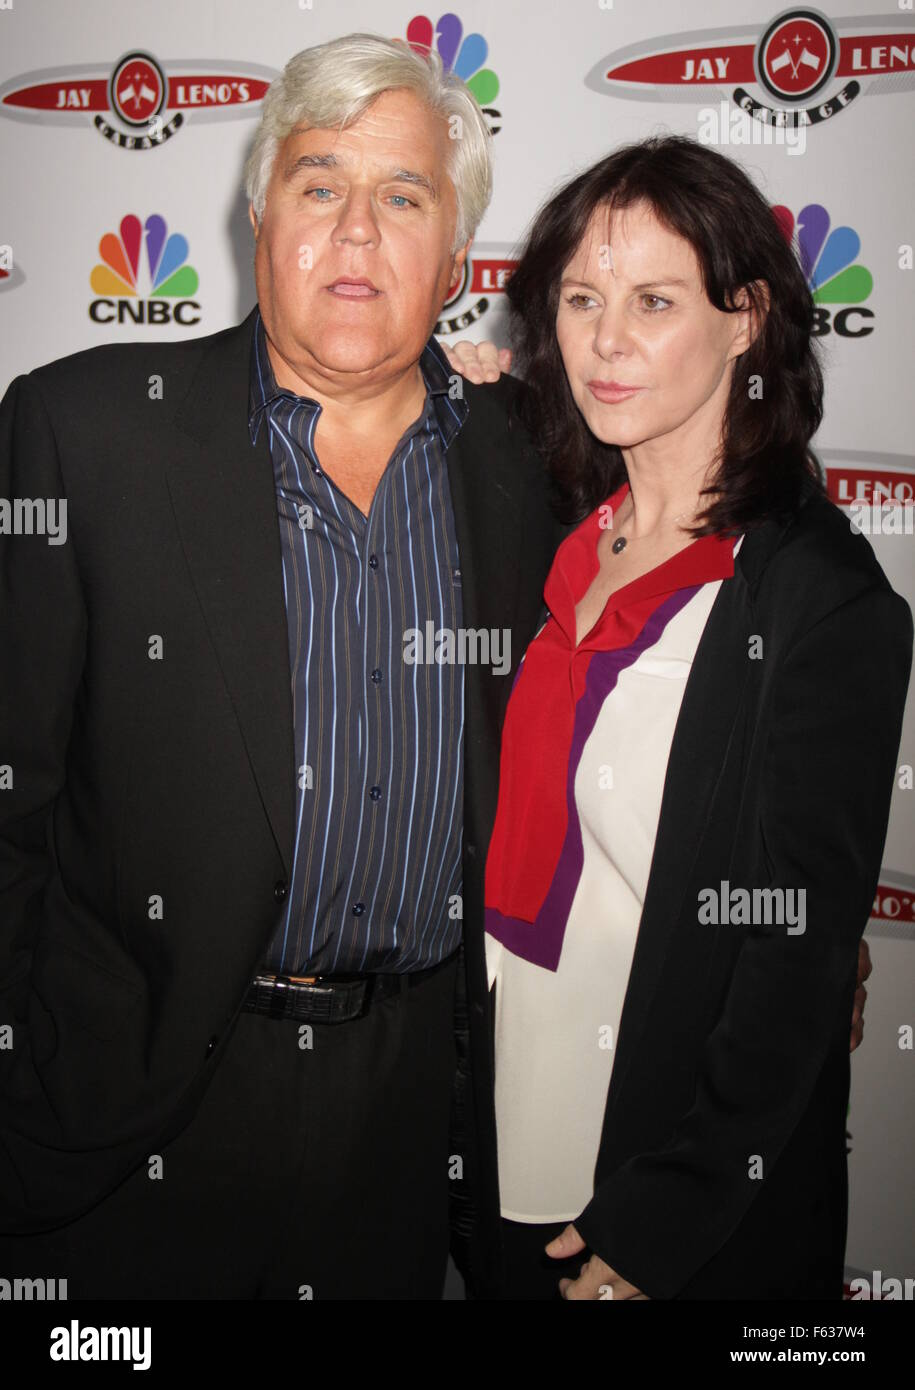 Launch Of Cnbc S Jay Leno S Garage At The Press Lounge At Ink 48